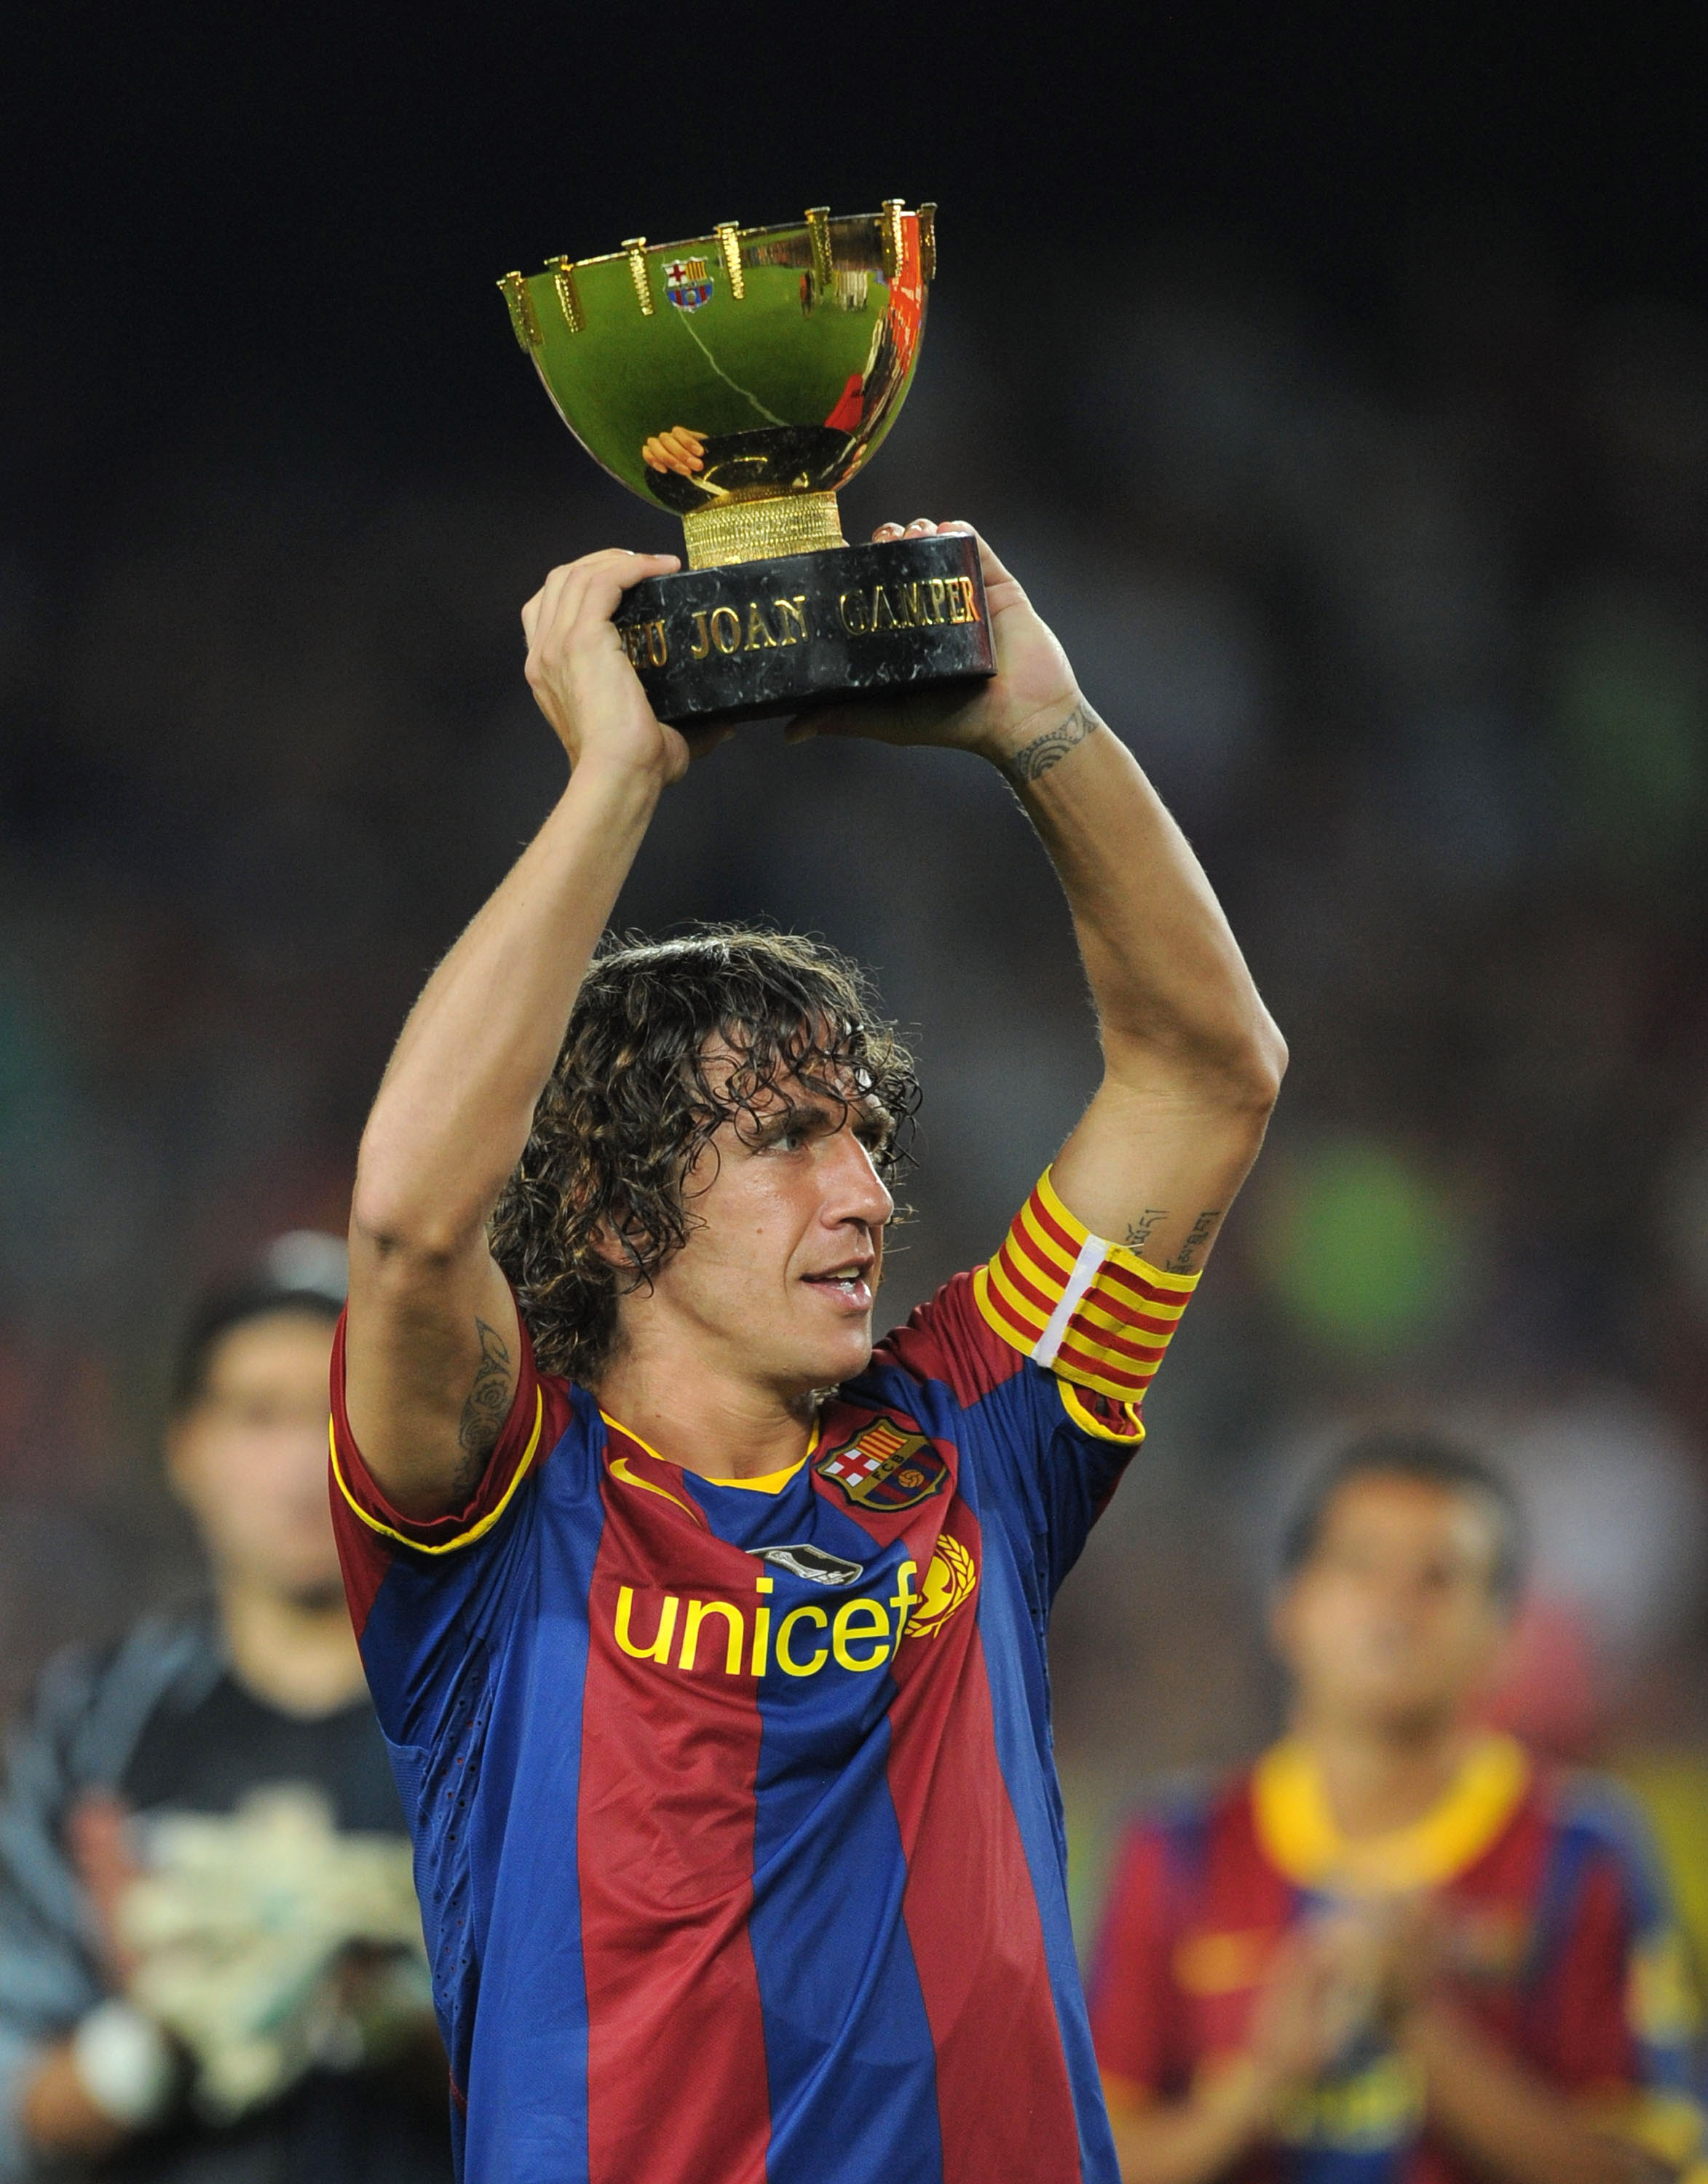 BARCELONA, SPAIN - AUGUST 25:  Carles Puyol of Barcelona holds the Joan Gamper Trophy after his team beat AC Milan in the Joan Gamper Trophy match between Barcelona and AC Milan at Camp Nou stadium on August 25, 2010 in Barcelona, Spain.  (Photo by Denis